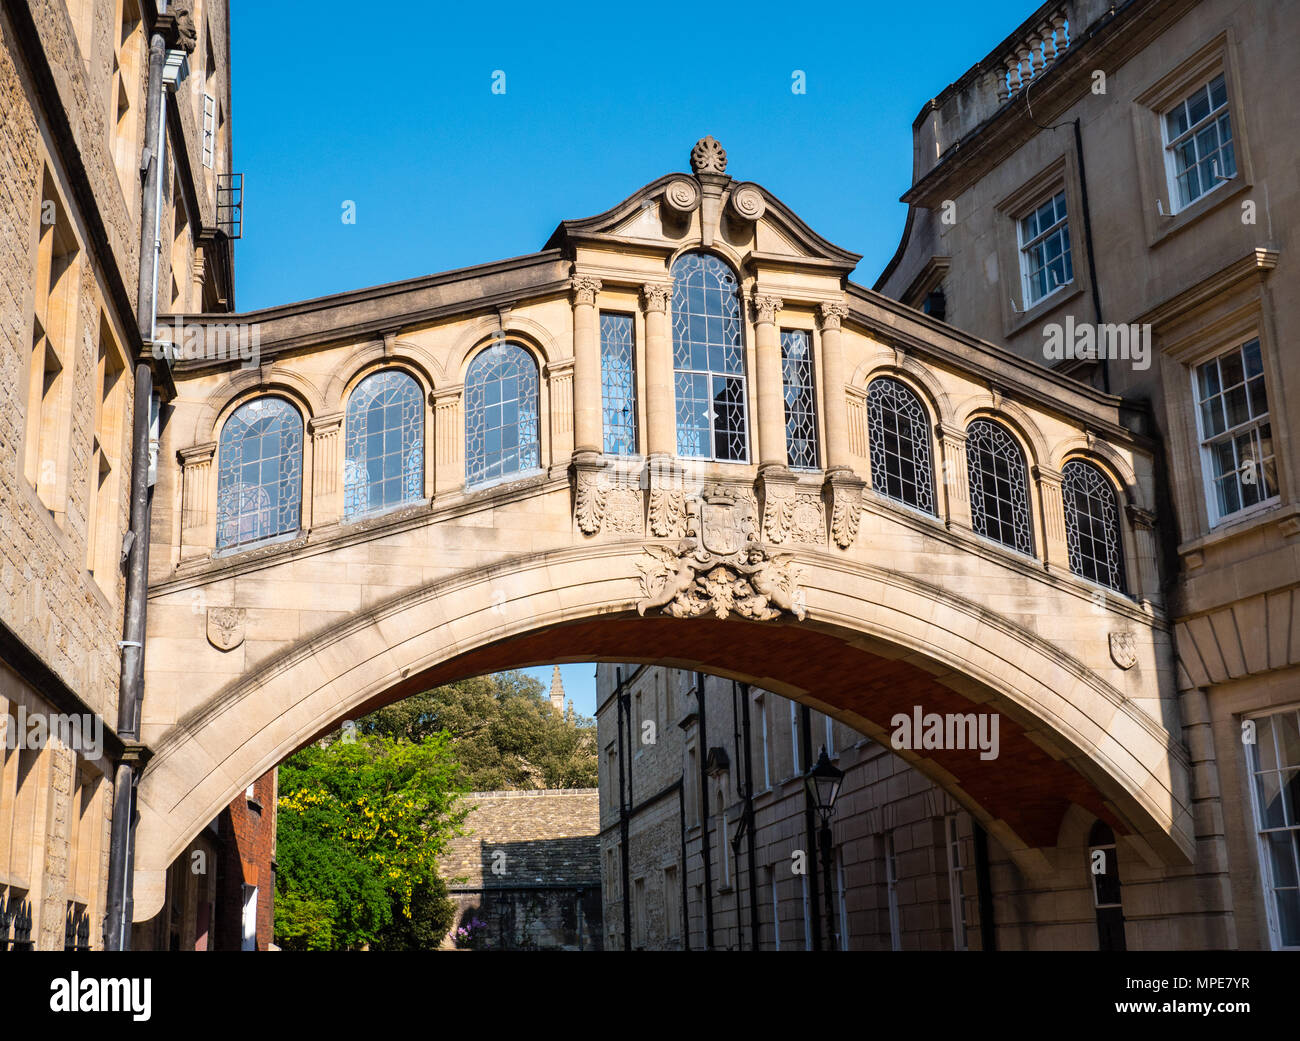 Bridge of Sighs, Skyway, Hertford College, New College Lane, Oxford, Oxfordshire, England, UK, GB. - Stock Image